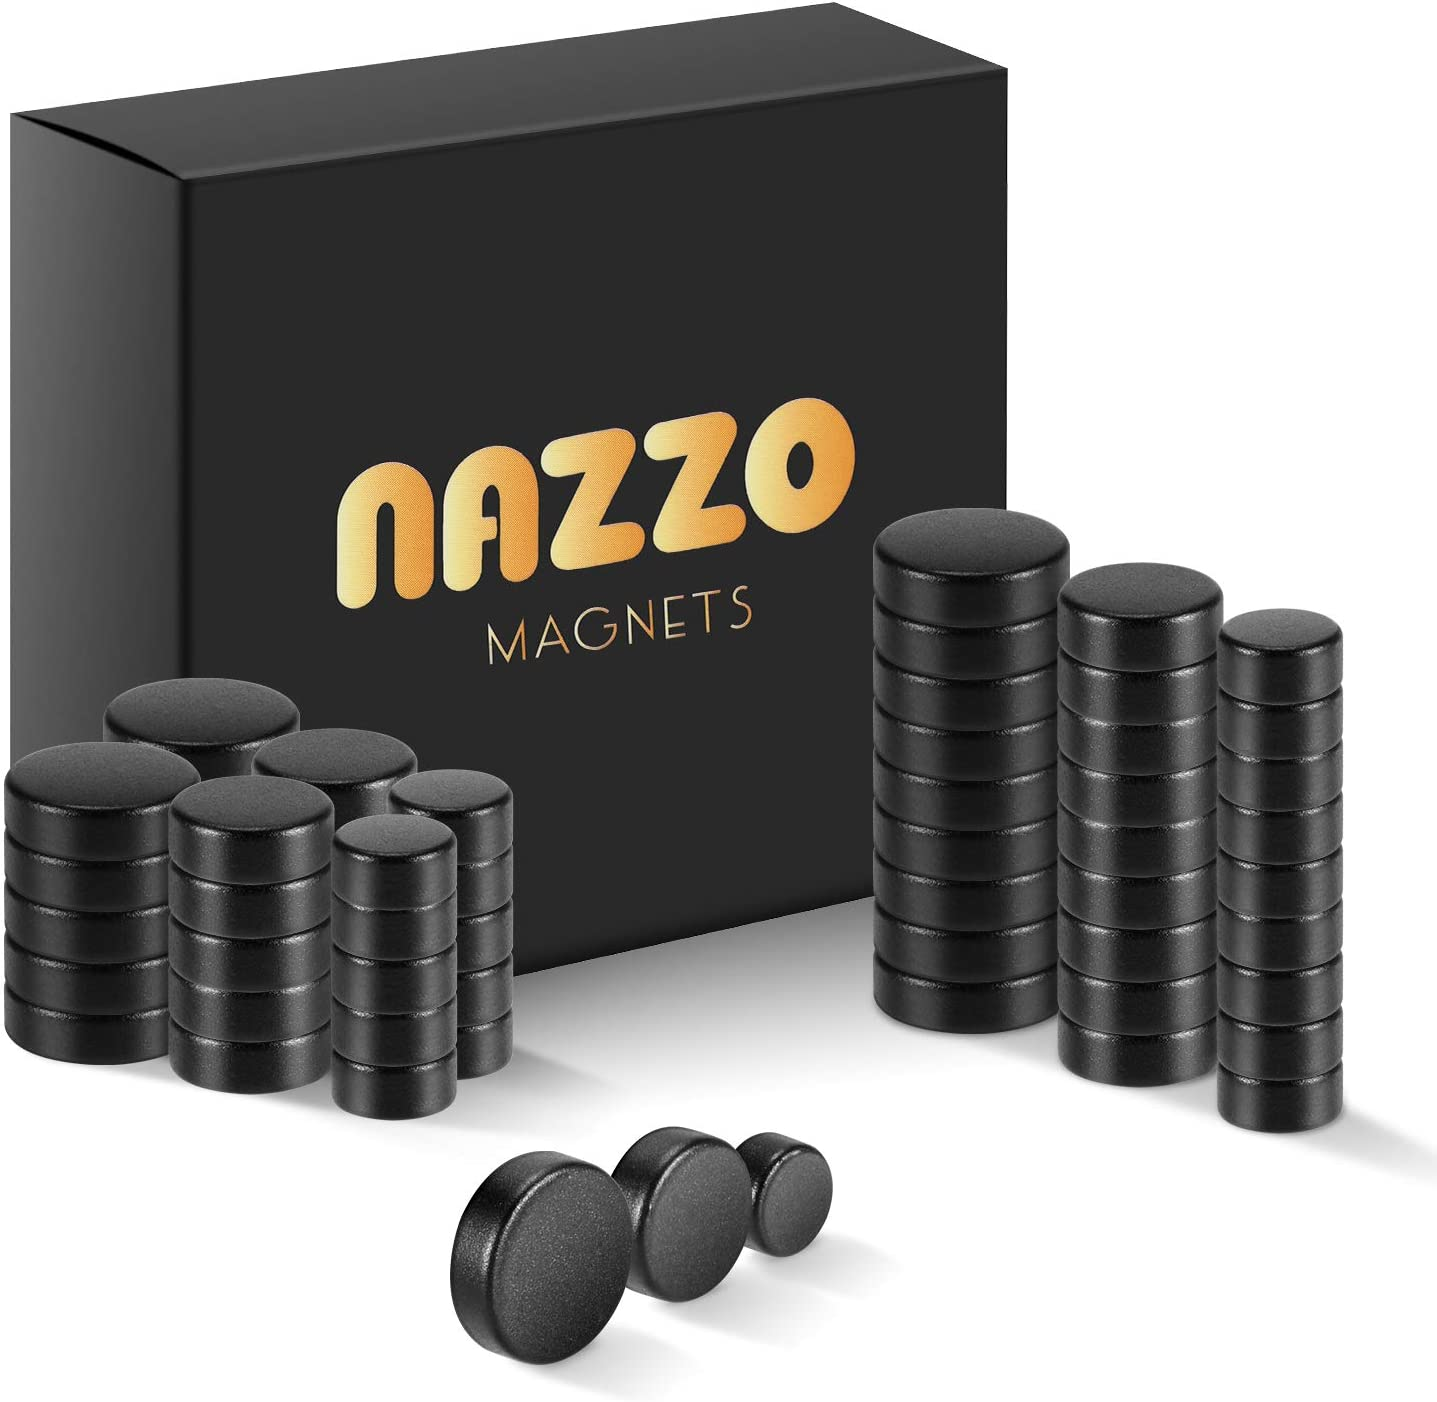 NAZZO Mini Magnets, Rare Earth Magnets, Super Strong Neodymium Magnets for Building, Science, DIY, Refrigerator and Kitchen Cabinet, Round Button Magnets, 3 Sizes 60pcs, Black